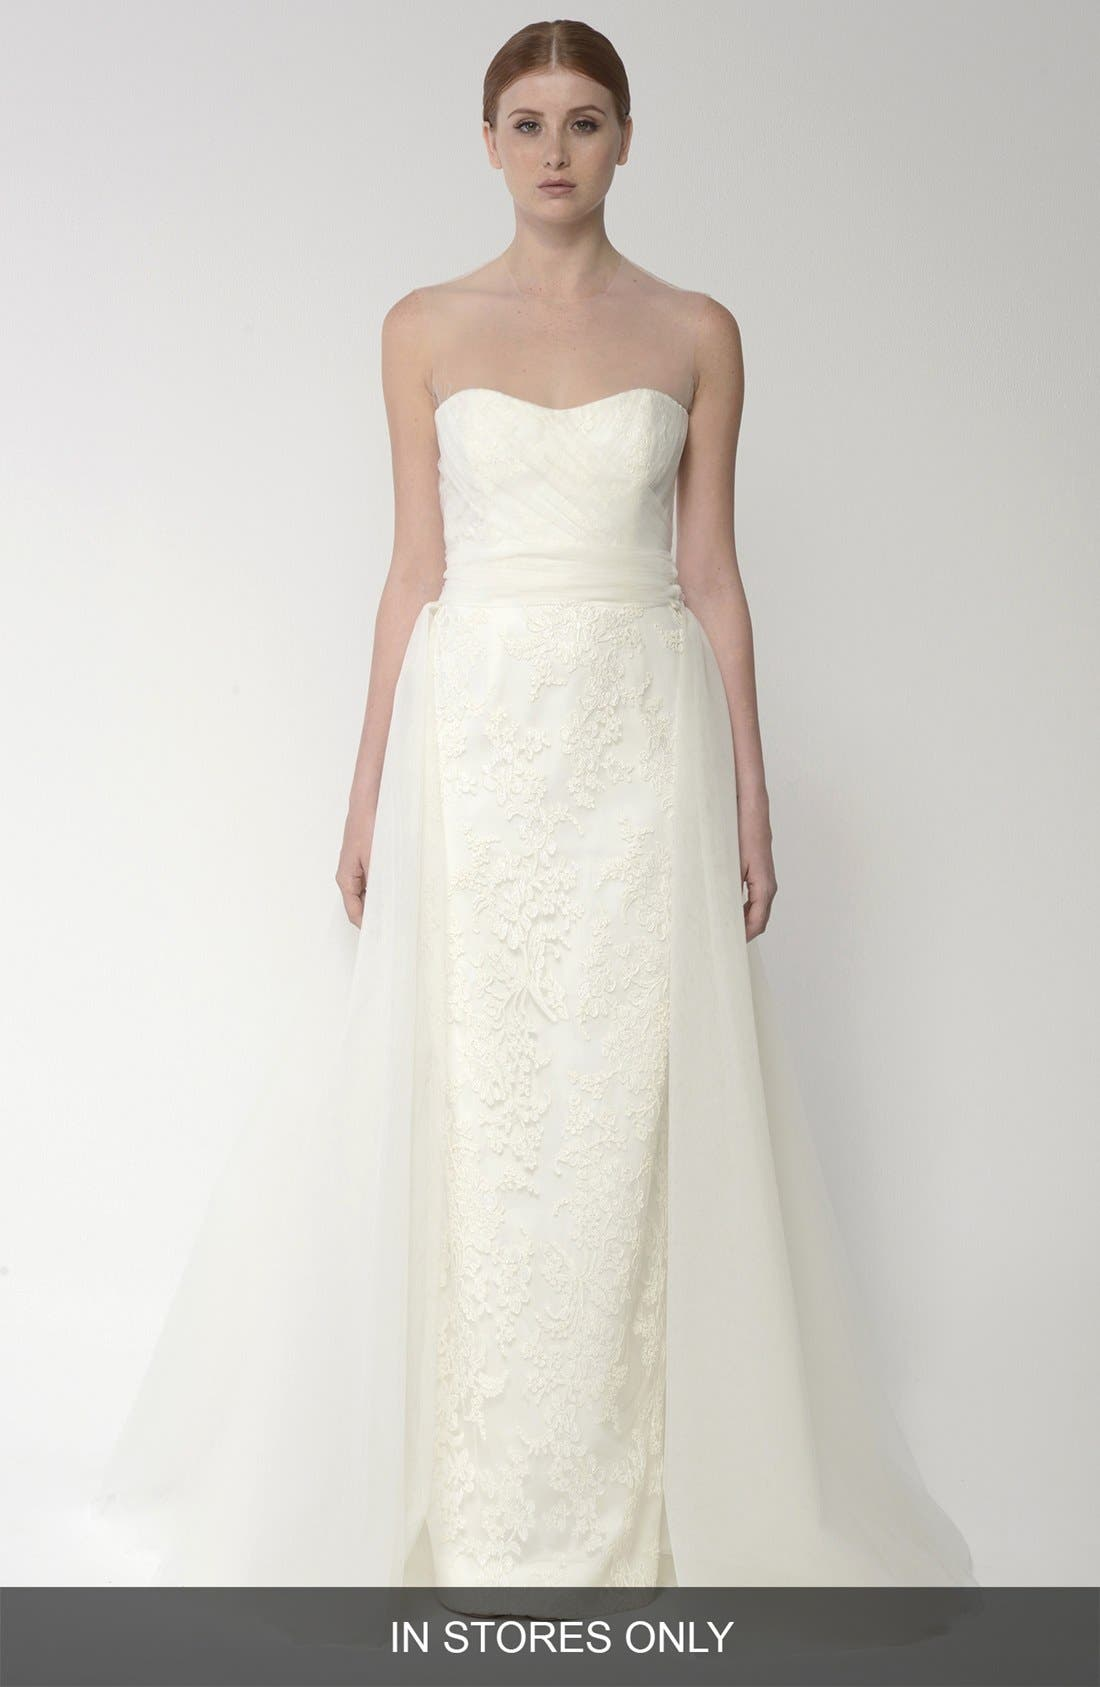 Alternate Image 1 Selected - BLISS Monique Lhuillier Embroidered Lace Gown with Detachable Tulle Overskirt (In Stores Only)